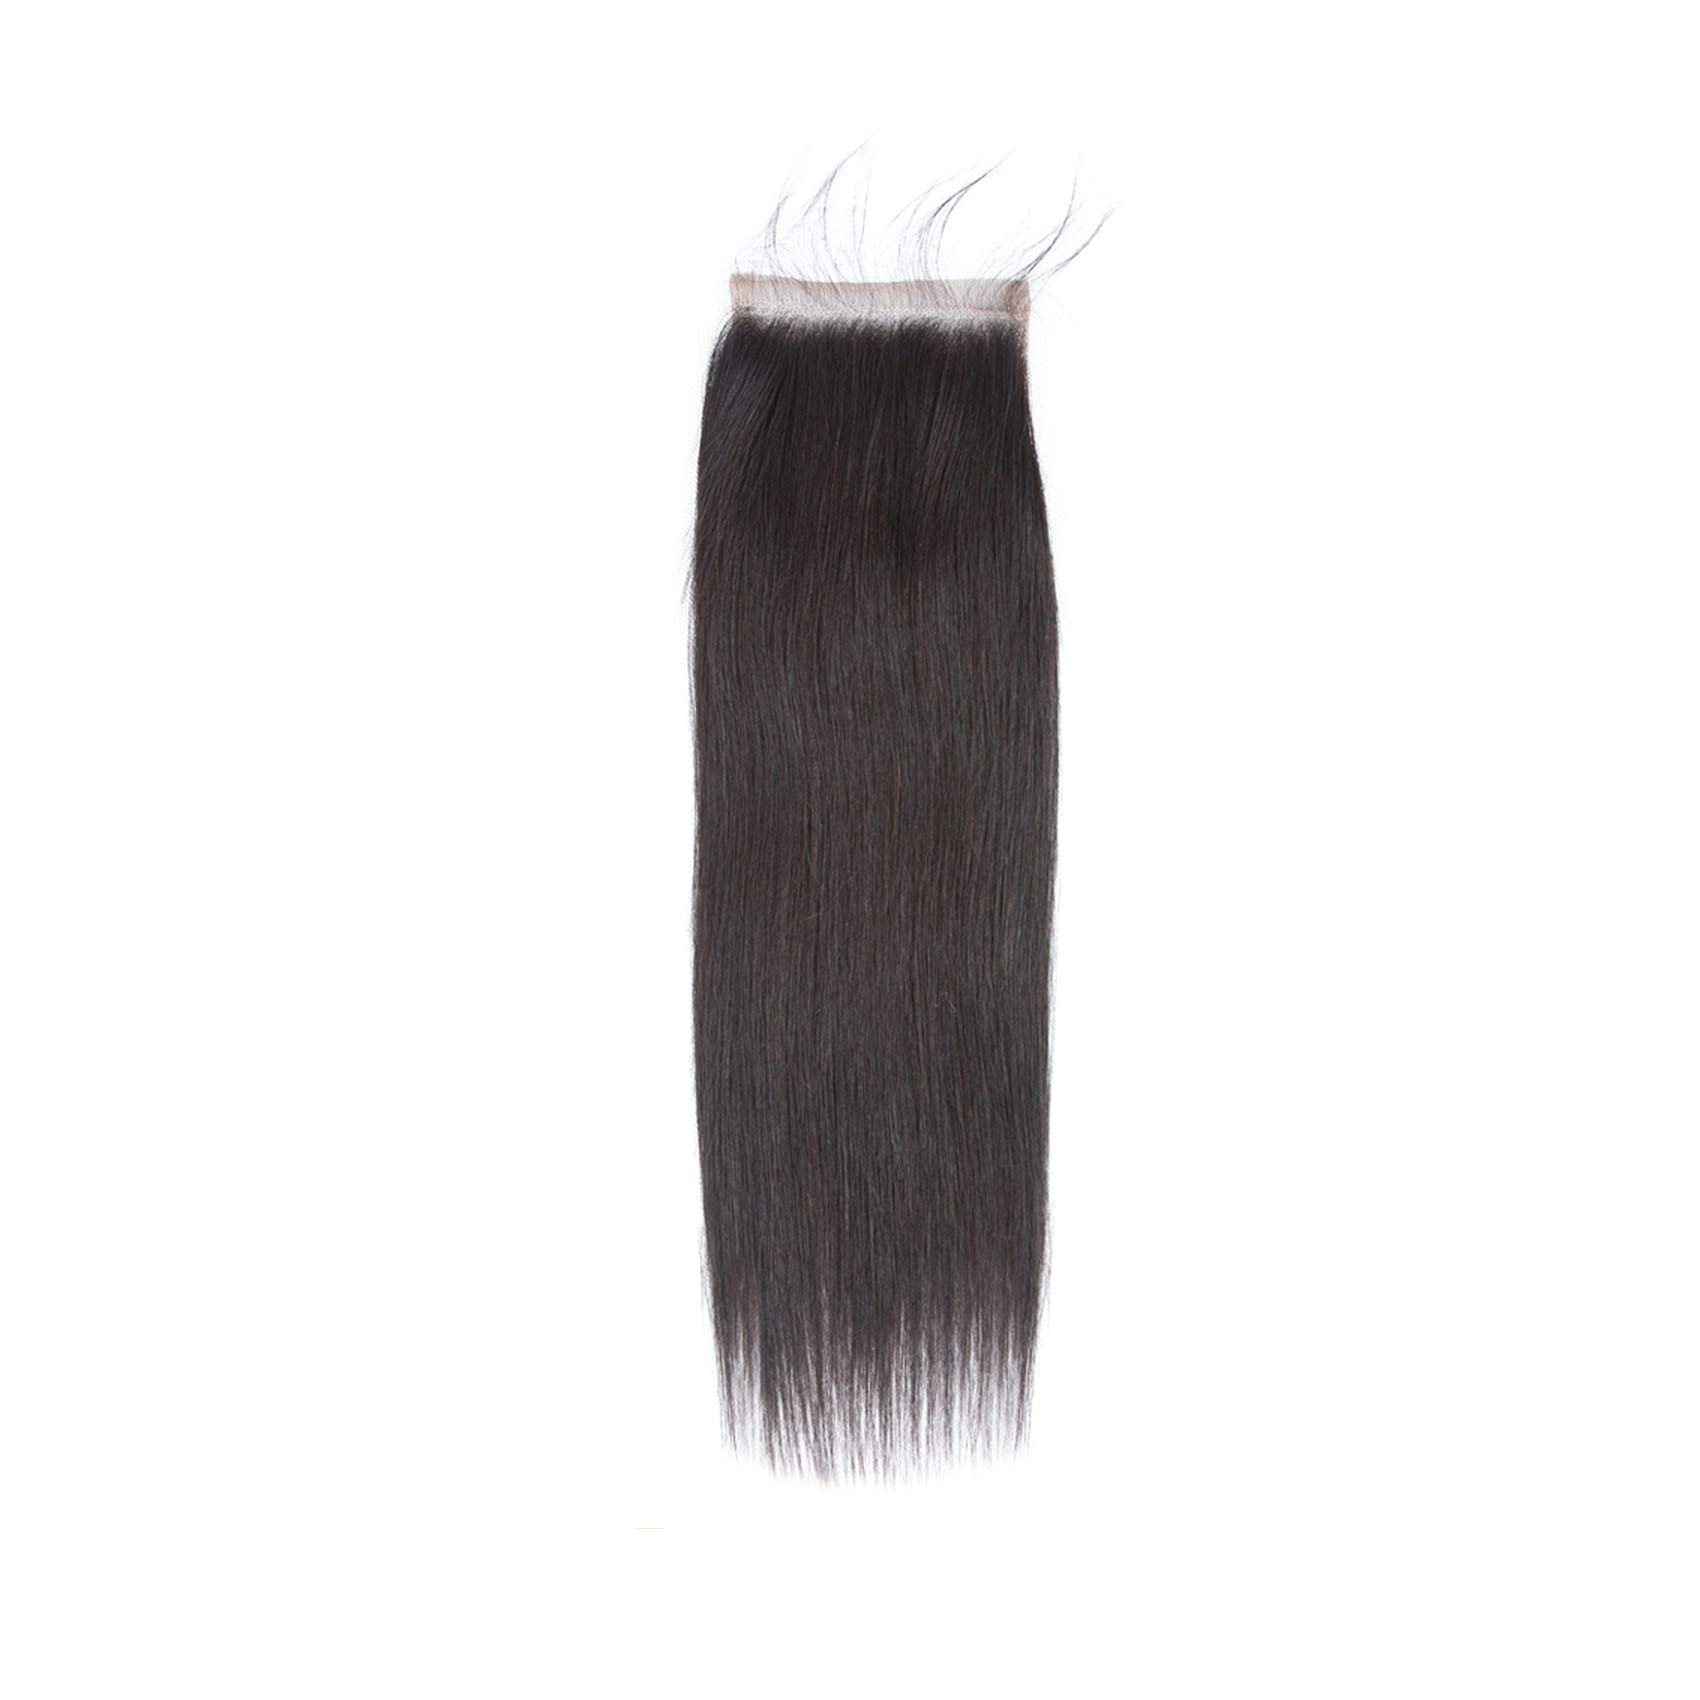 Hair Extension Human Hair Bundles With Closure Weave 3 Bundles,18 20 22 +16Closure,Natural Color,China,Free Part by Sparks Fly Shop-hair-extensions